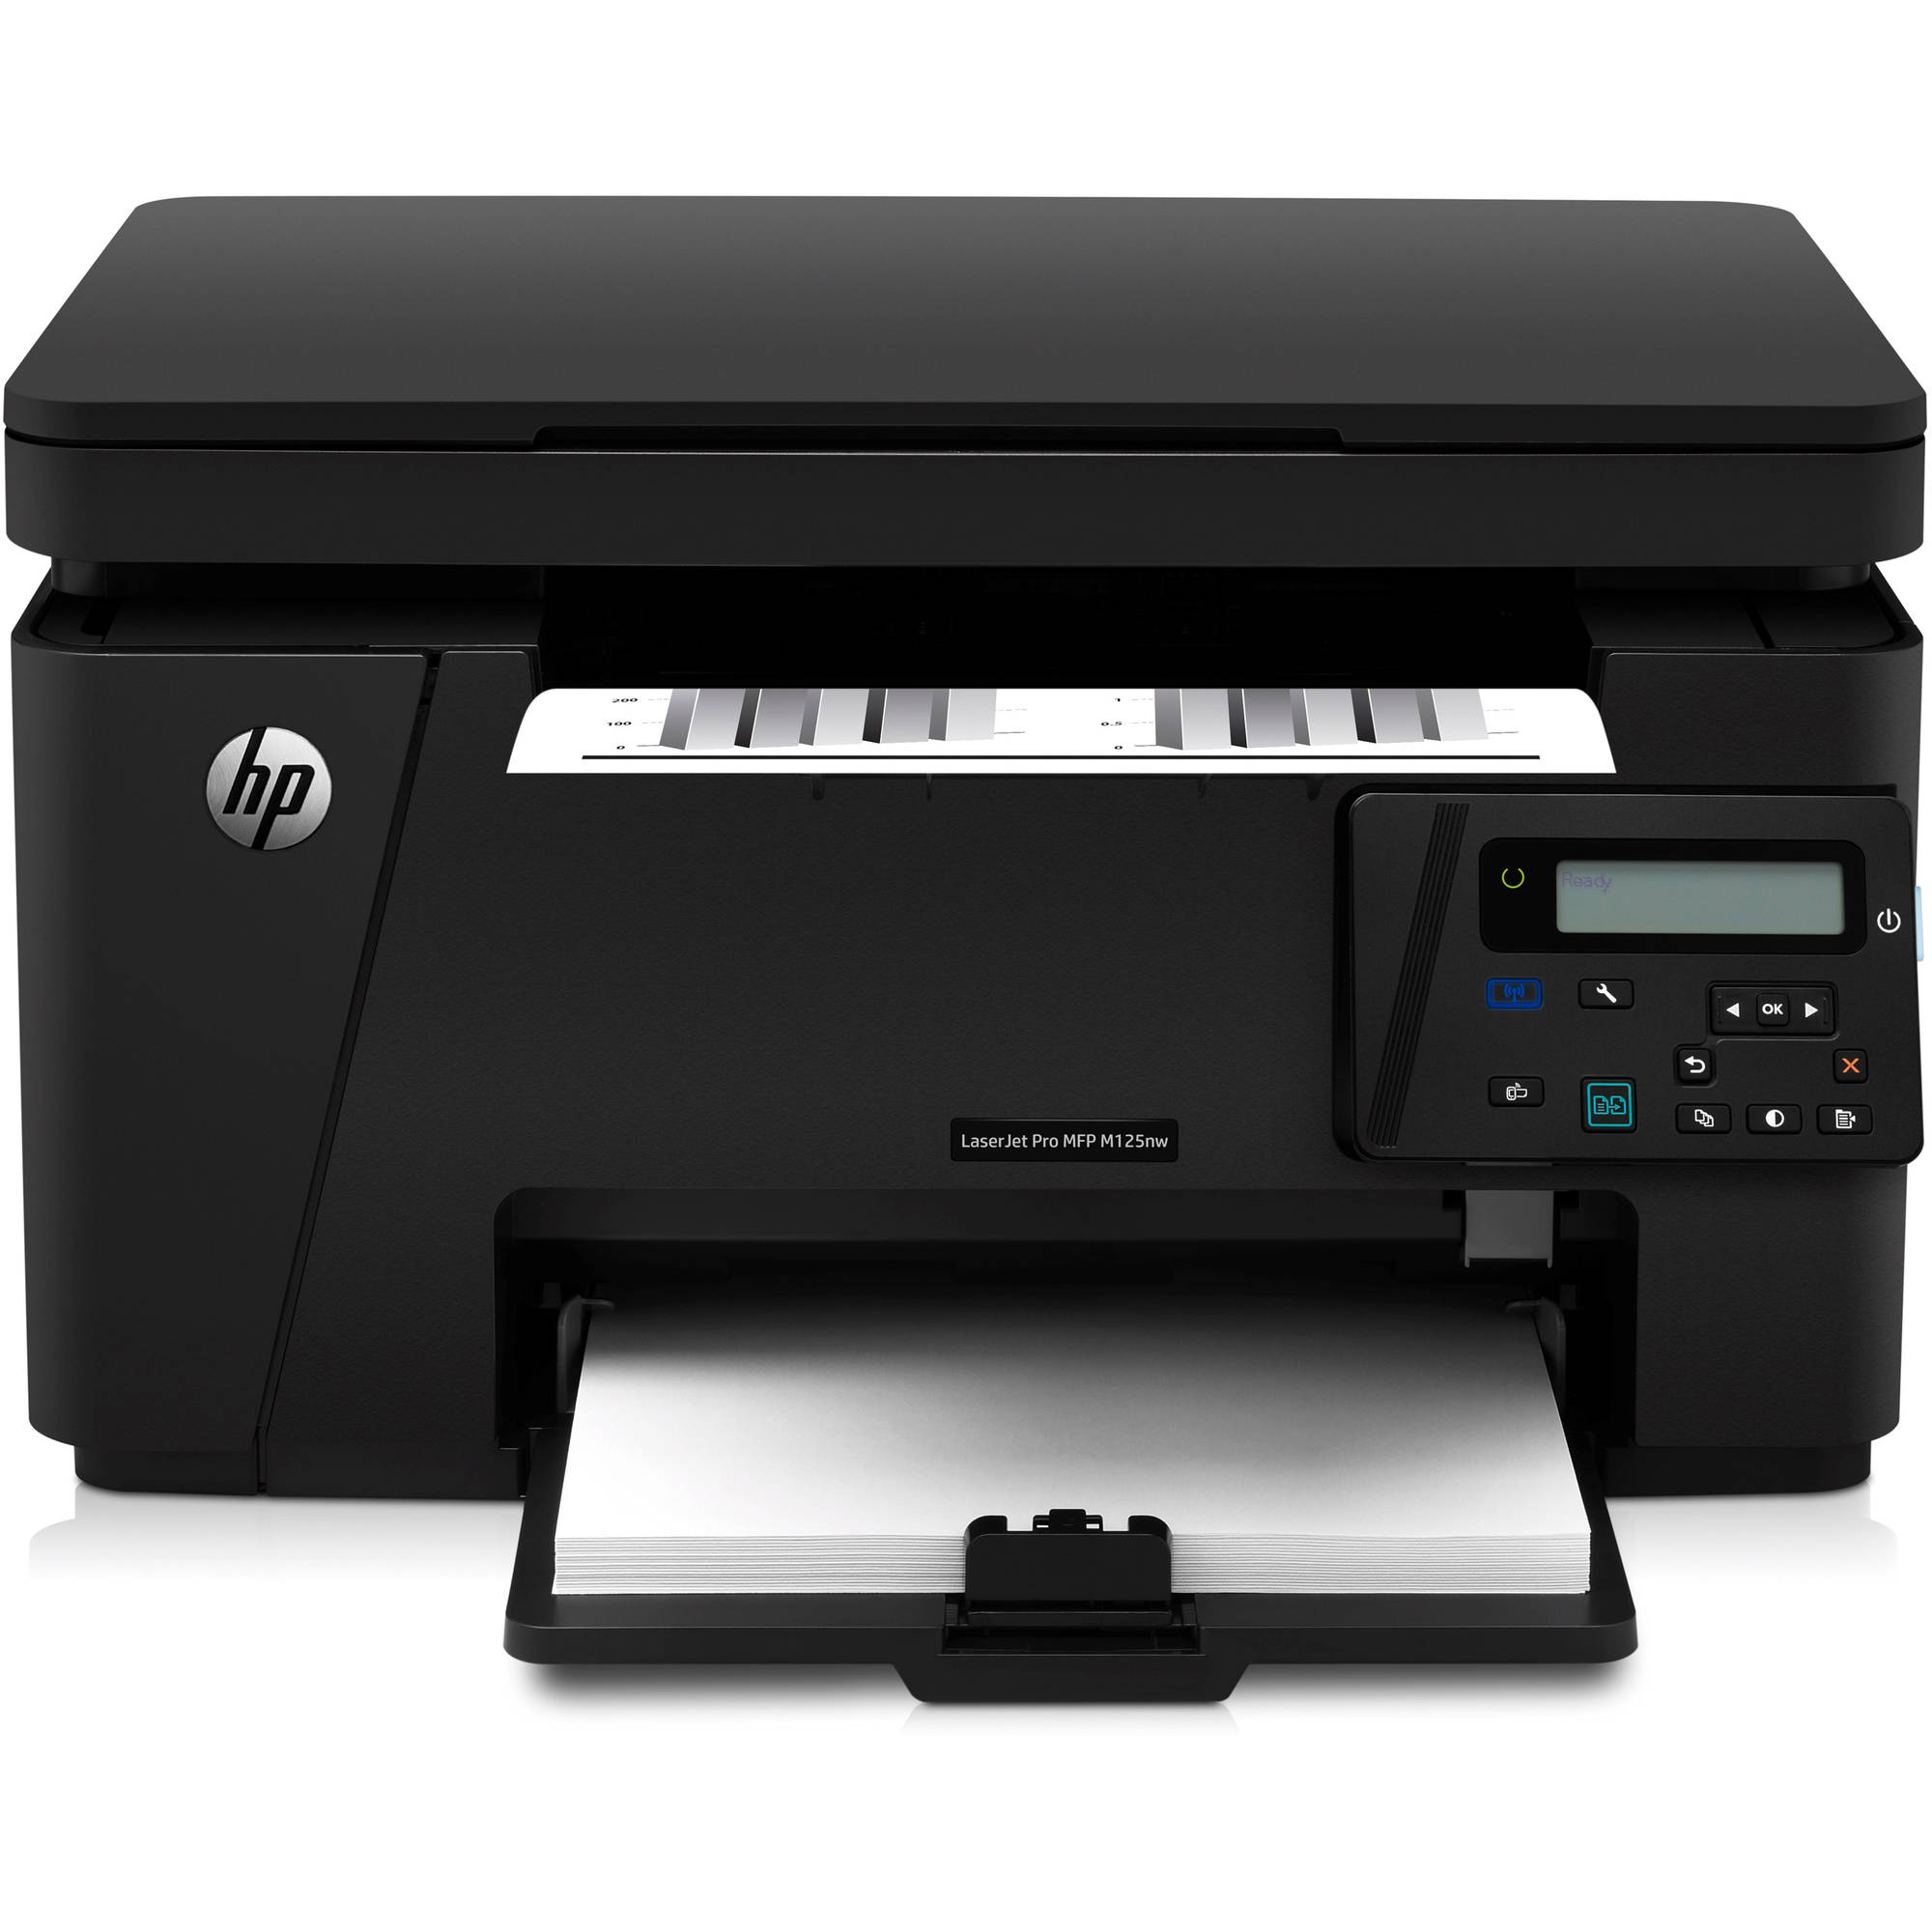 HP LaserJet Pro MFP M125nw Multifunction Printer/Copier/S...